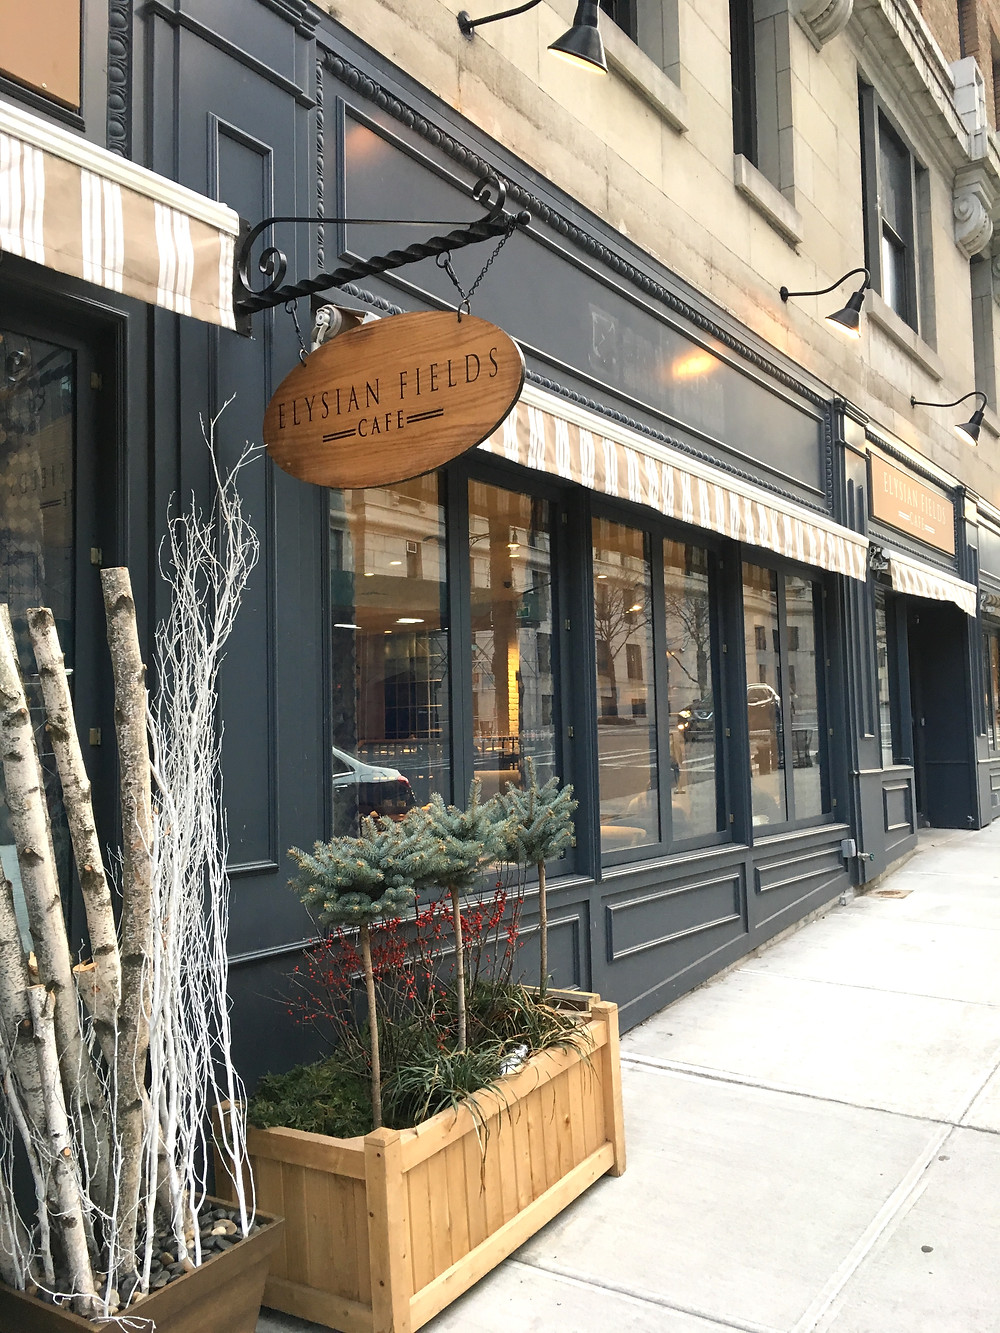 Elysian Fields Cafe brings rustic Greek fare to Morningside Heights